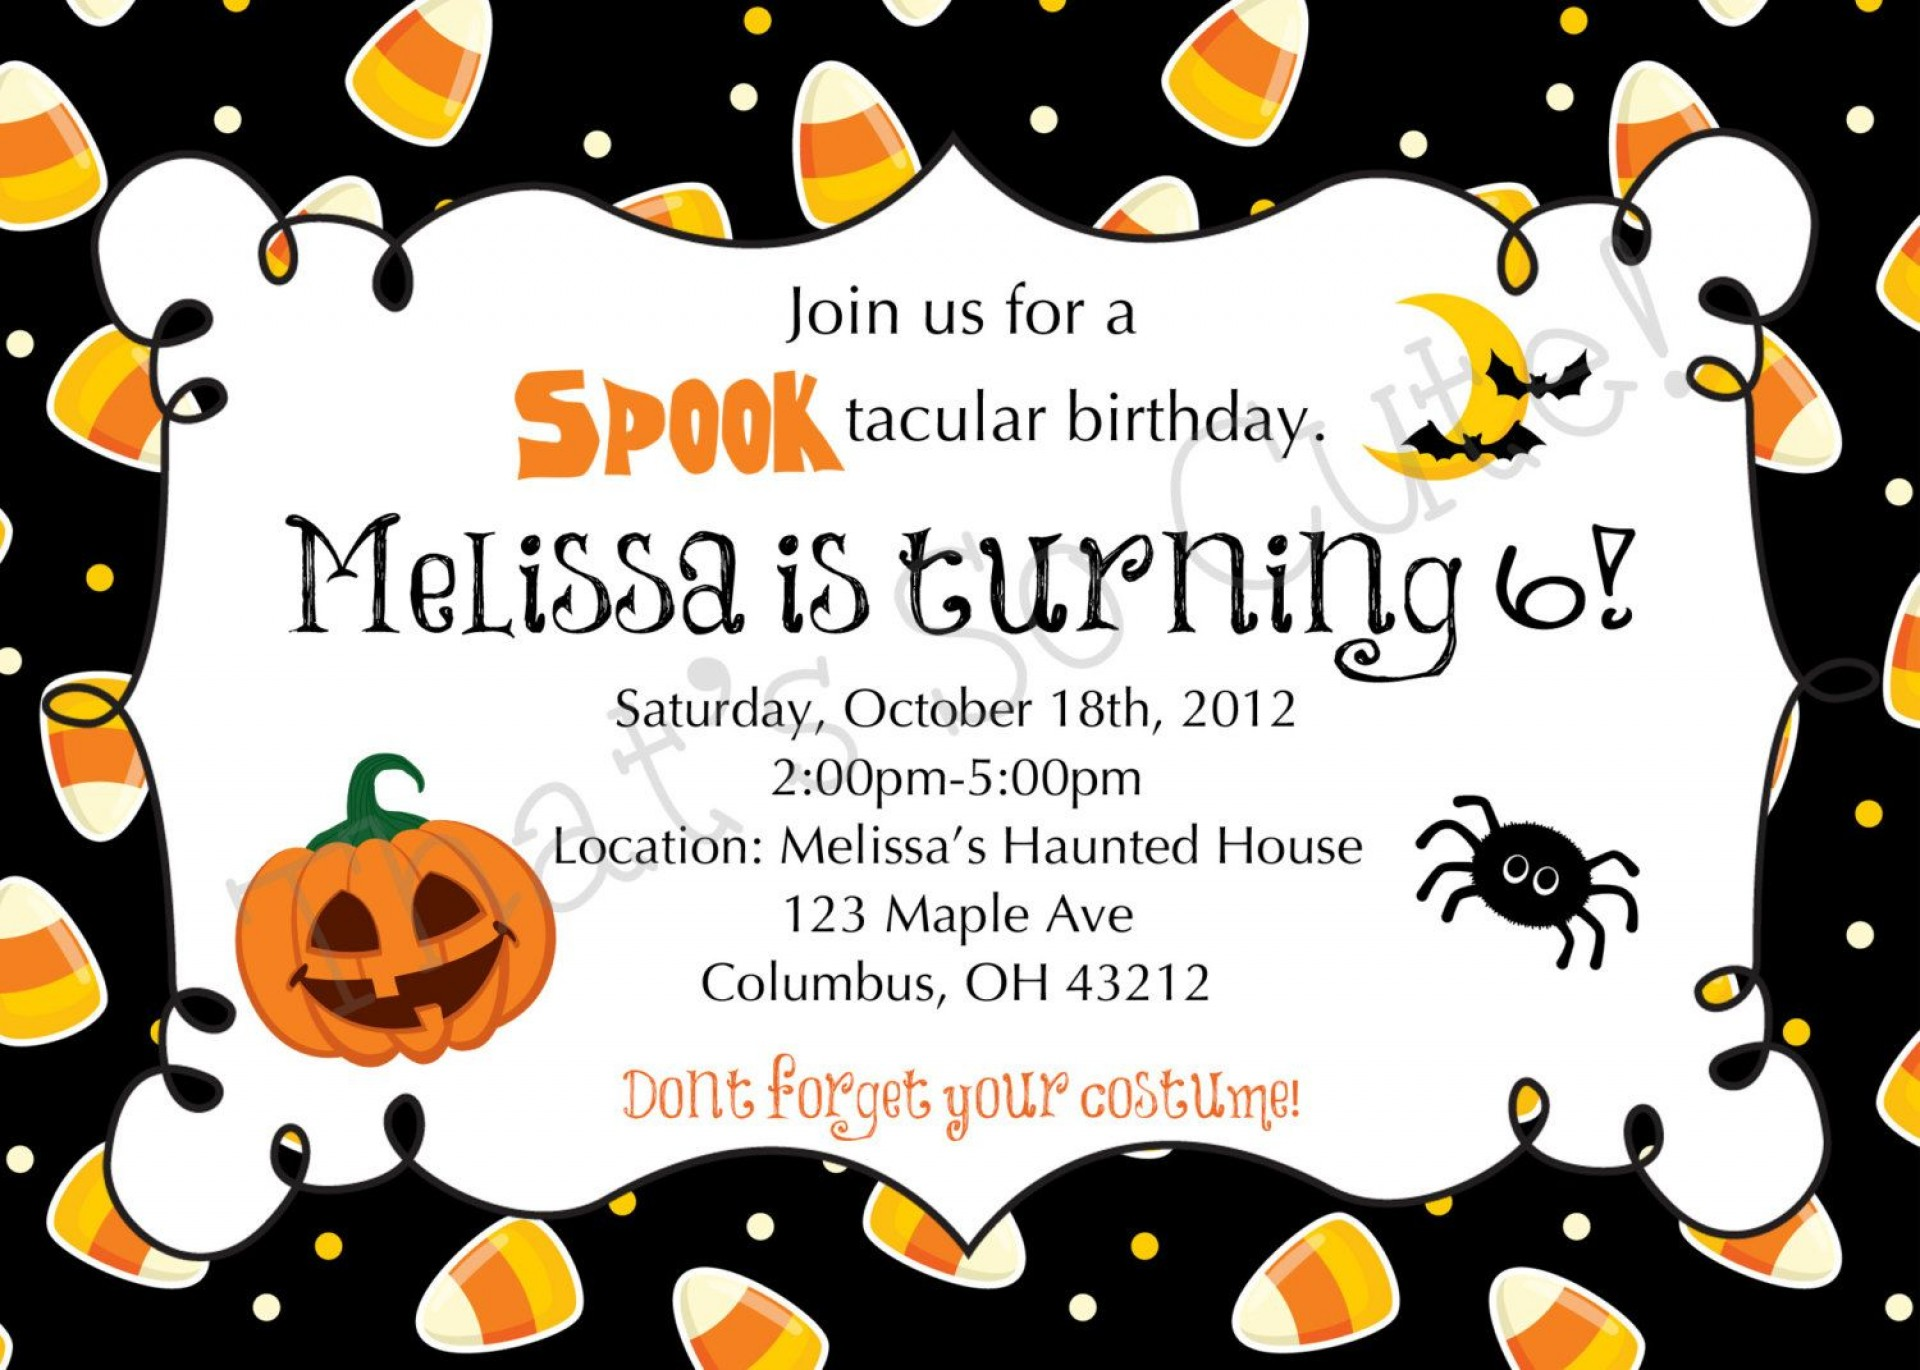 003 Imposing Free Halloween Party Invitation Template Inspiration  Templates Download Printable Birthday1920